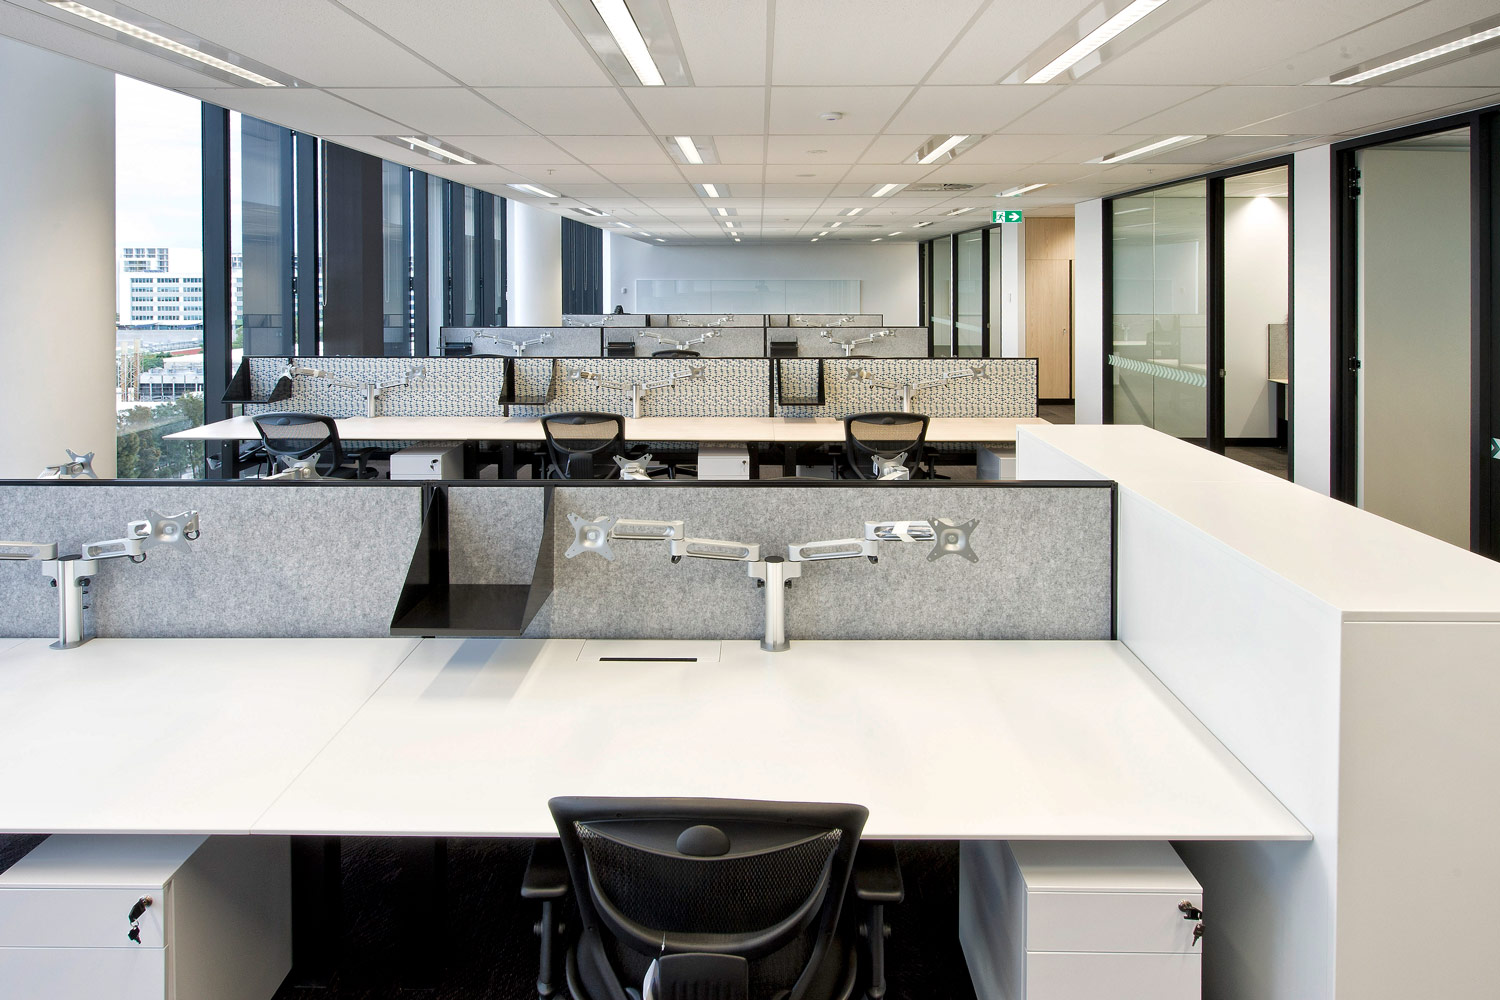 Actif workstations, Gamma chairs, Easy mobile pedestals and KI dual monitor arms